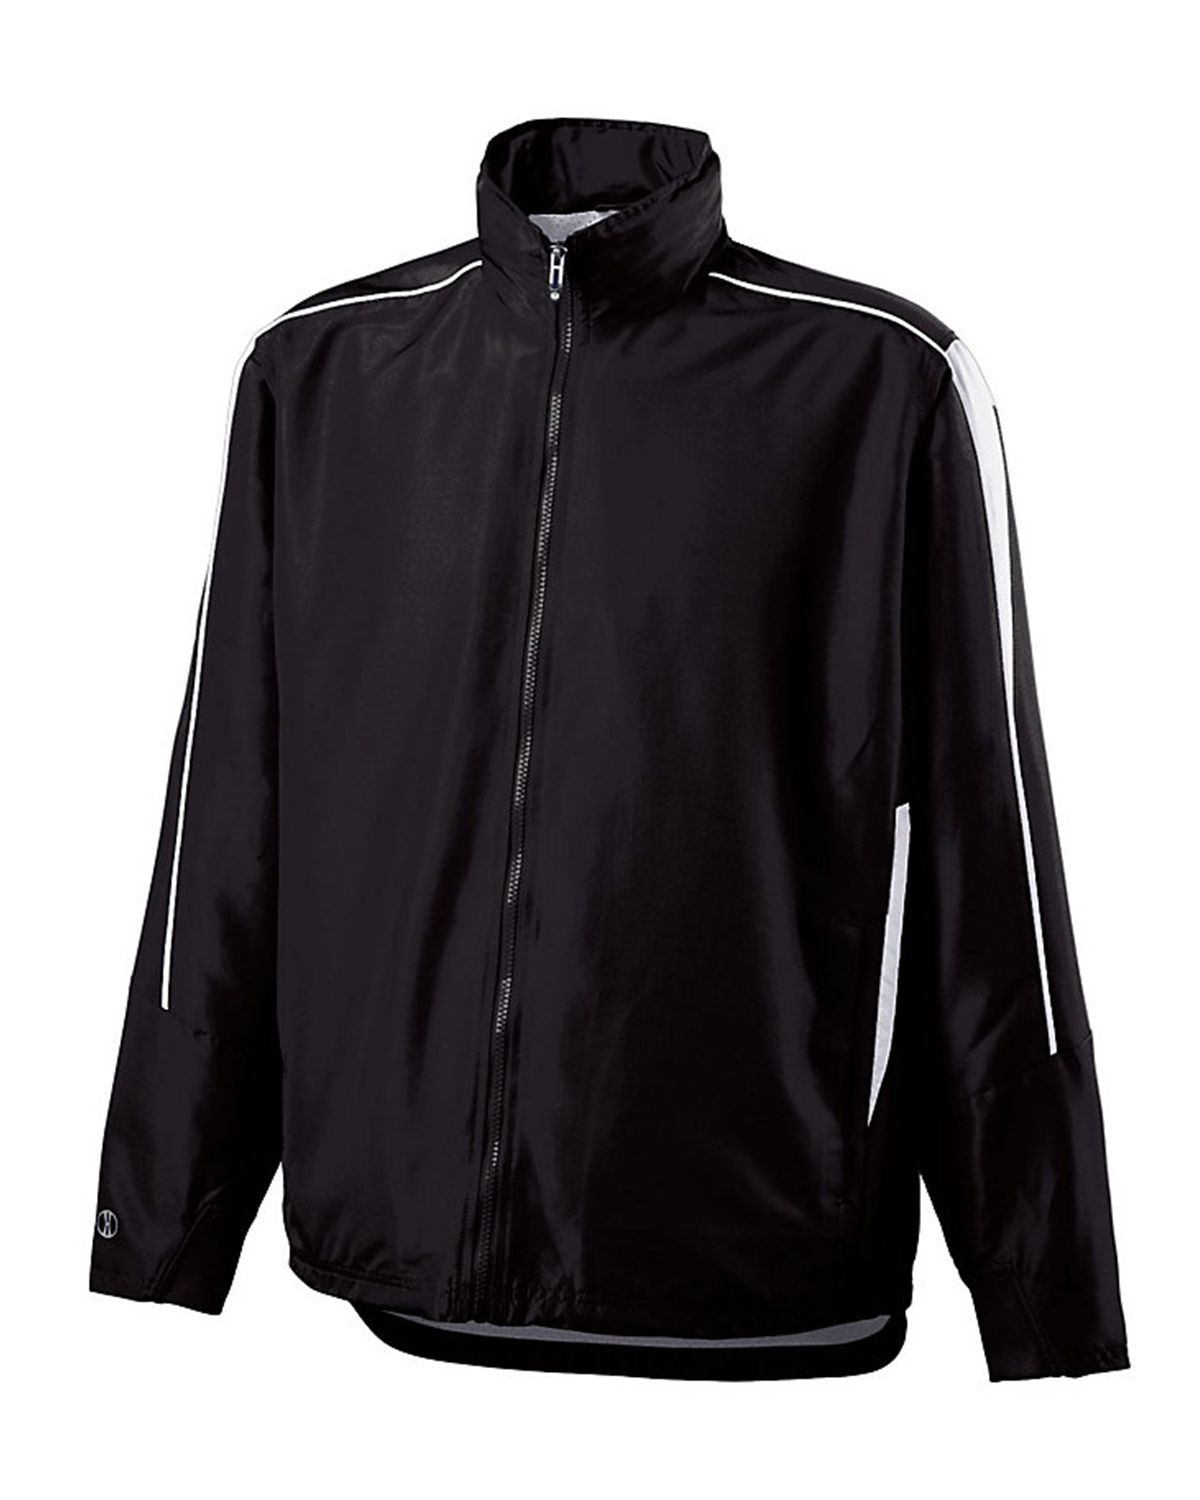 Holloway 229062 Aggression Jacket - Black/ White - S 229062